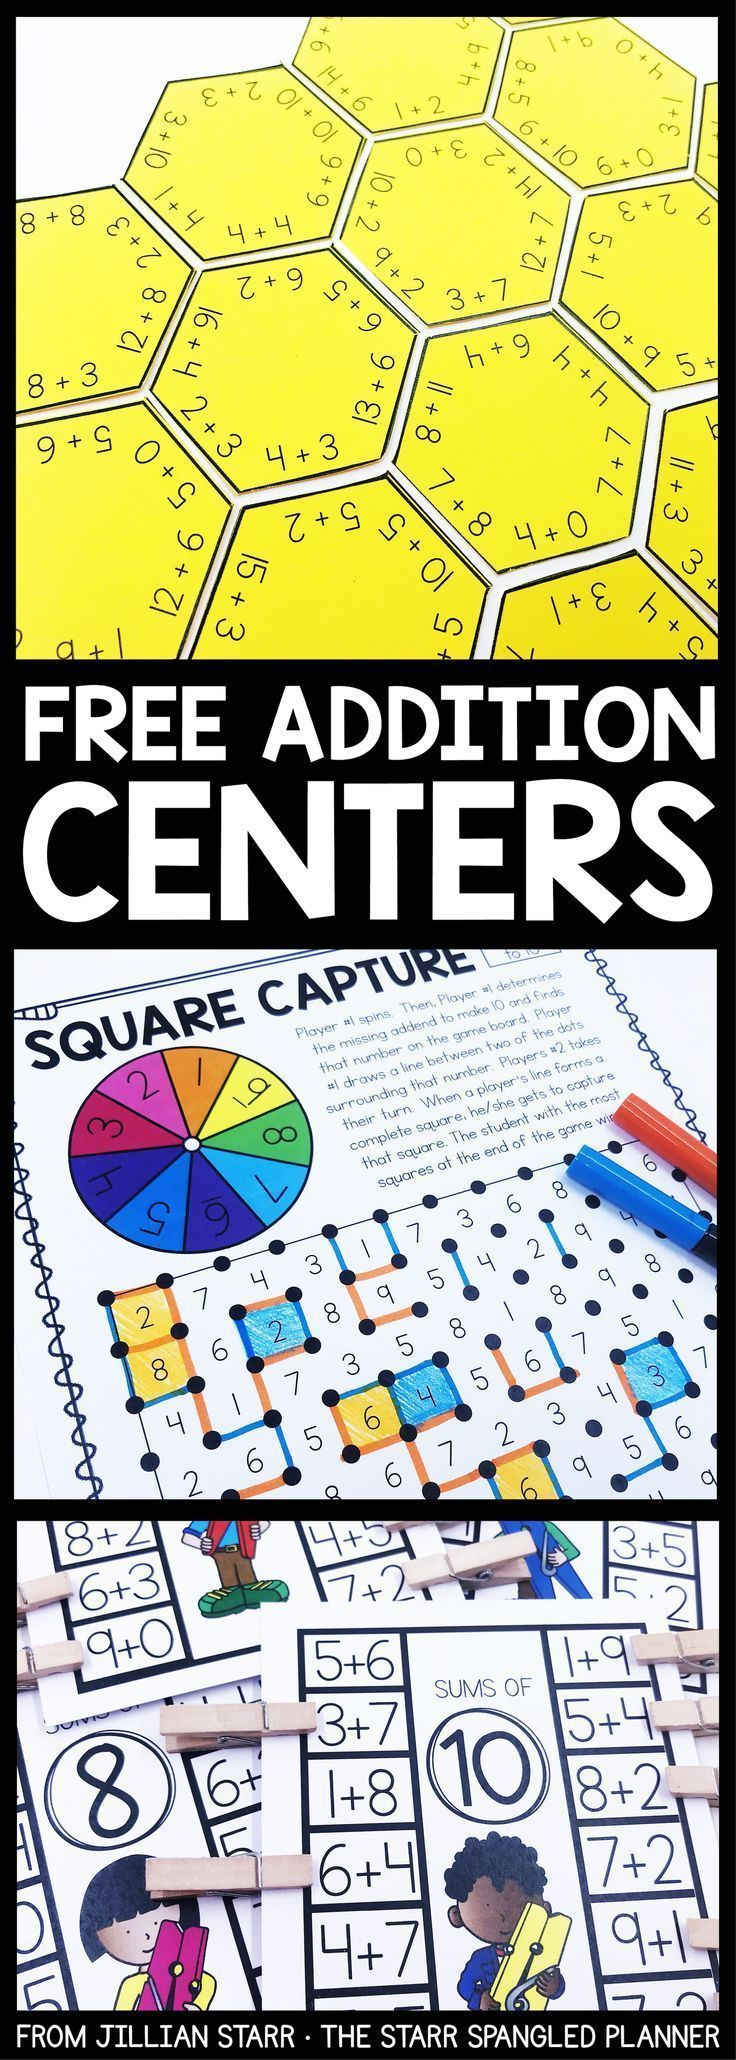 Addition Centers to help your students practice their addition math facts, strategies, and build fact fluency. A mix of games, logic puzzles, and hands on activities that are perfect for Kindergarten, First and Second grade math centers and stations! #mathpracticegames